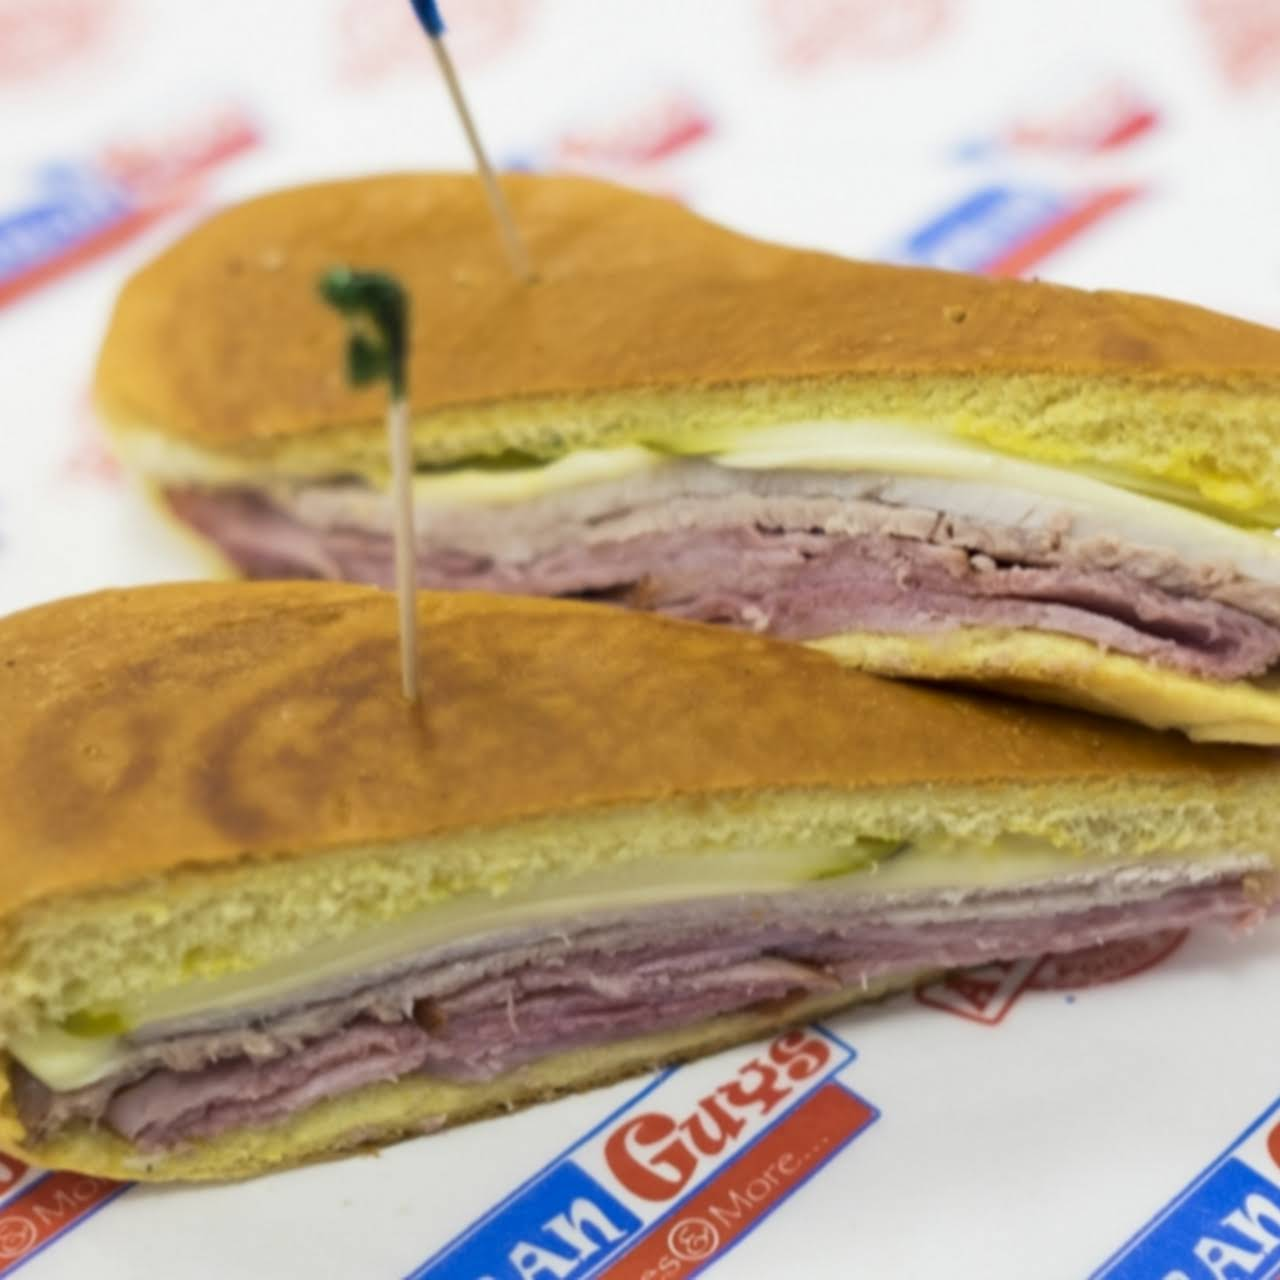 Cuban Guys Restaurants - Hialeah Gardens - Cuban Restaurant in Hialeah